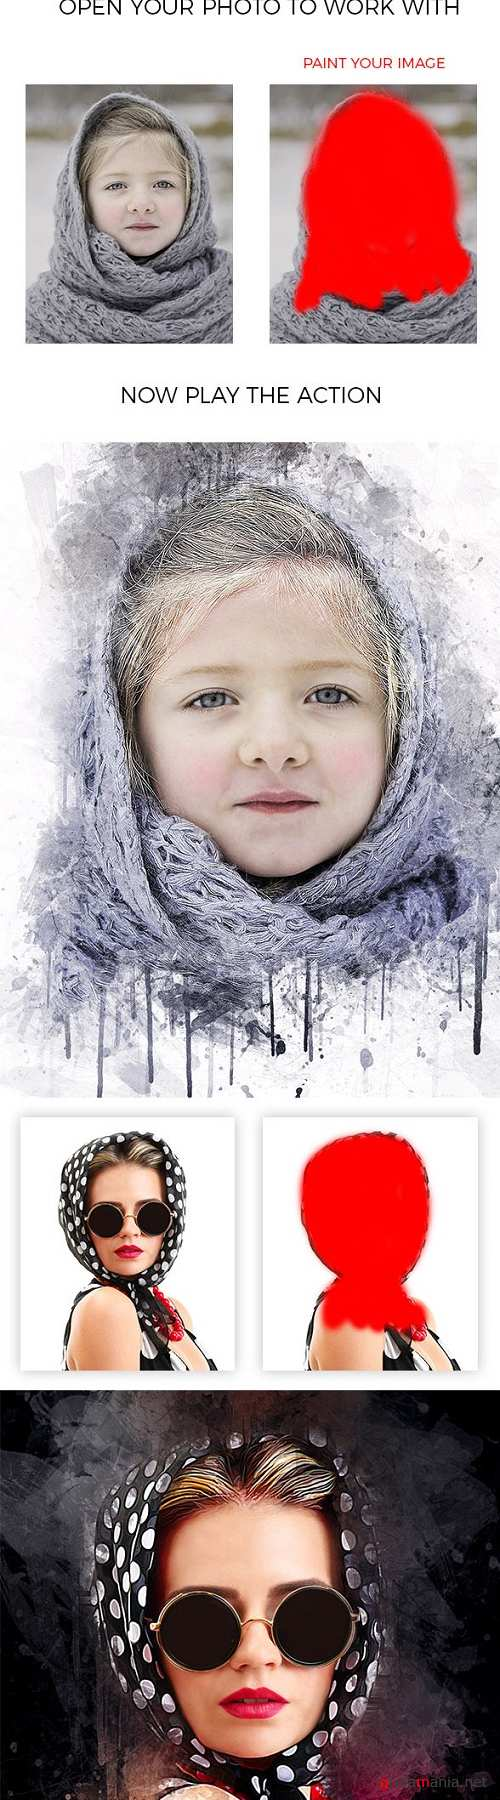 Ink Art Photoshop Action 21029026